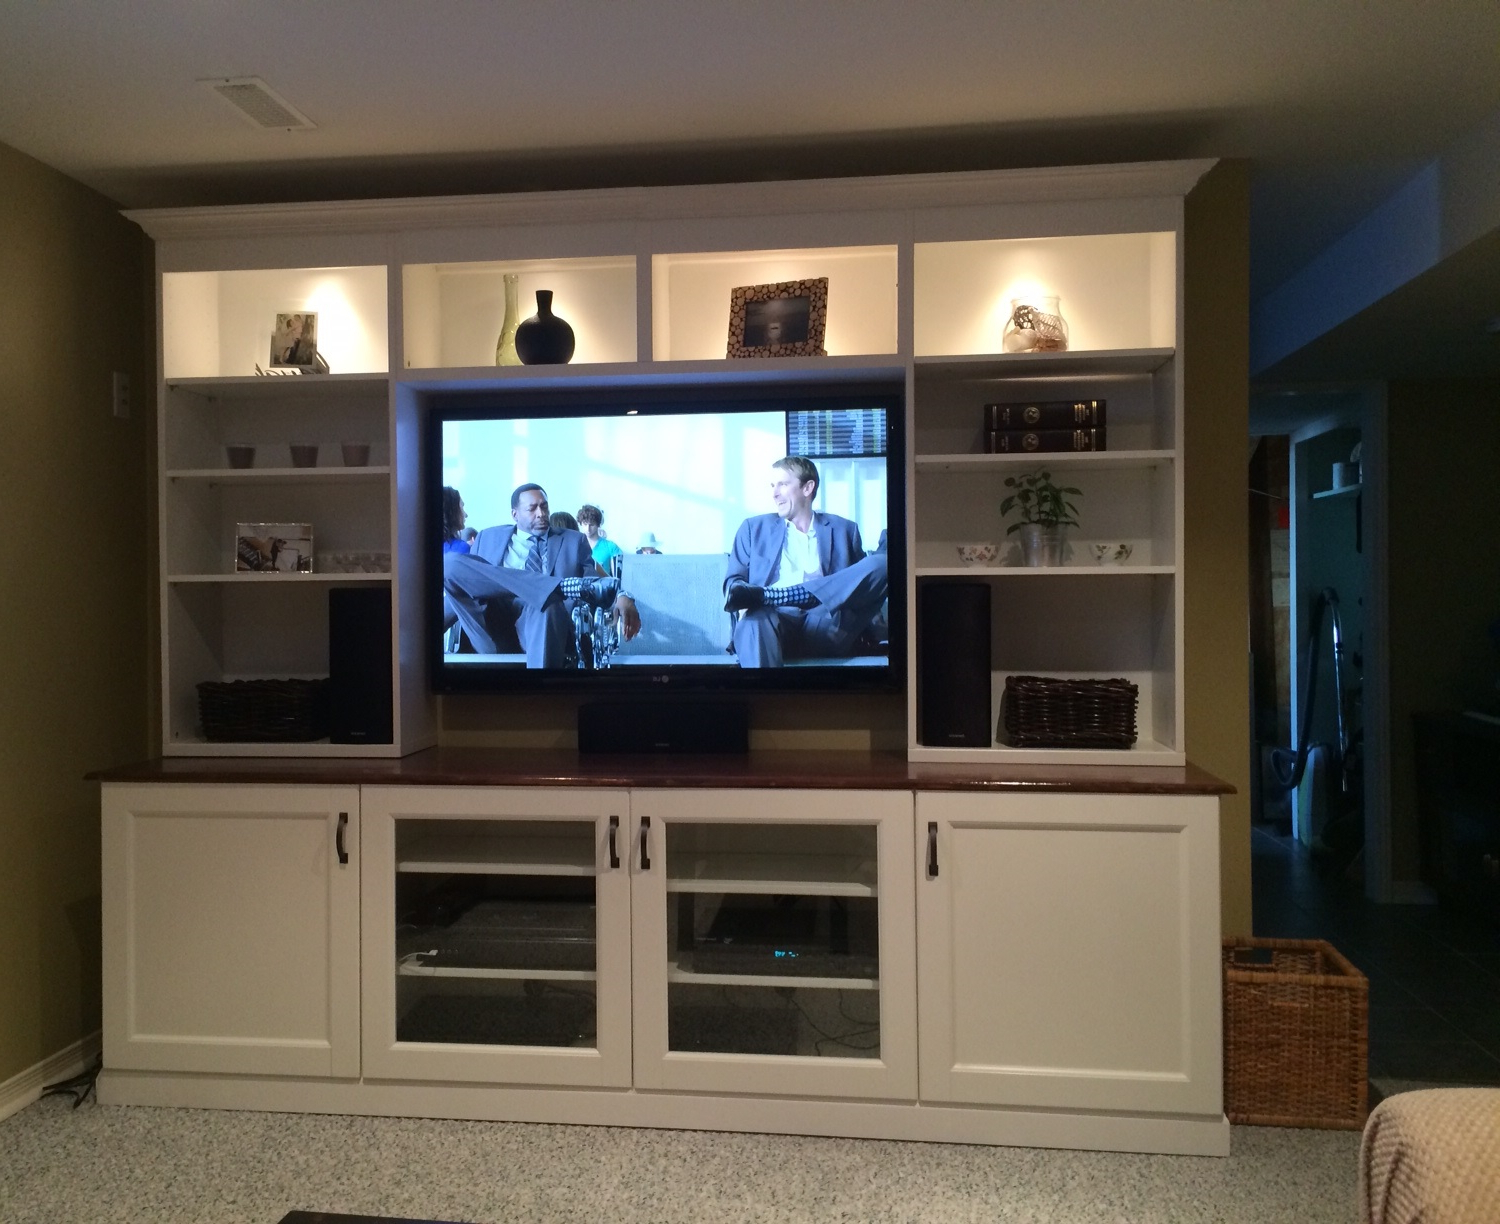 Widely Used Furniture: Display Space For Audio Components And Collectibles With With Regard To Ikea Wall Mounted Tv Cabinets (View 19 of 20)